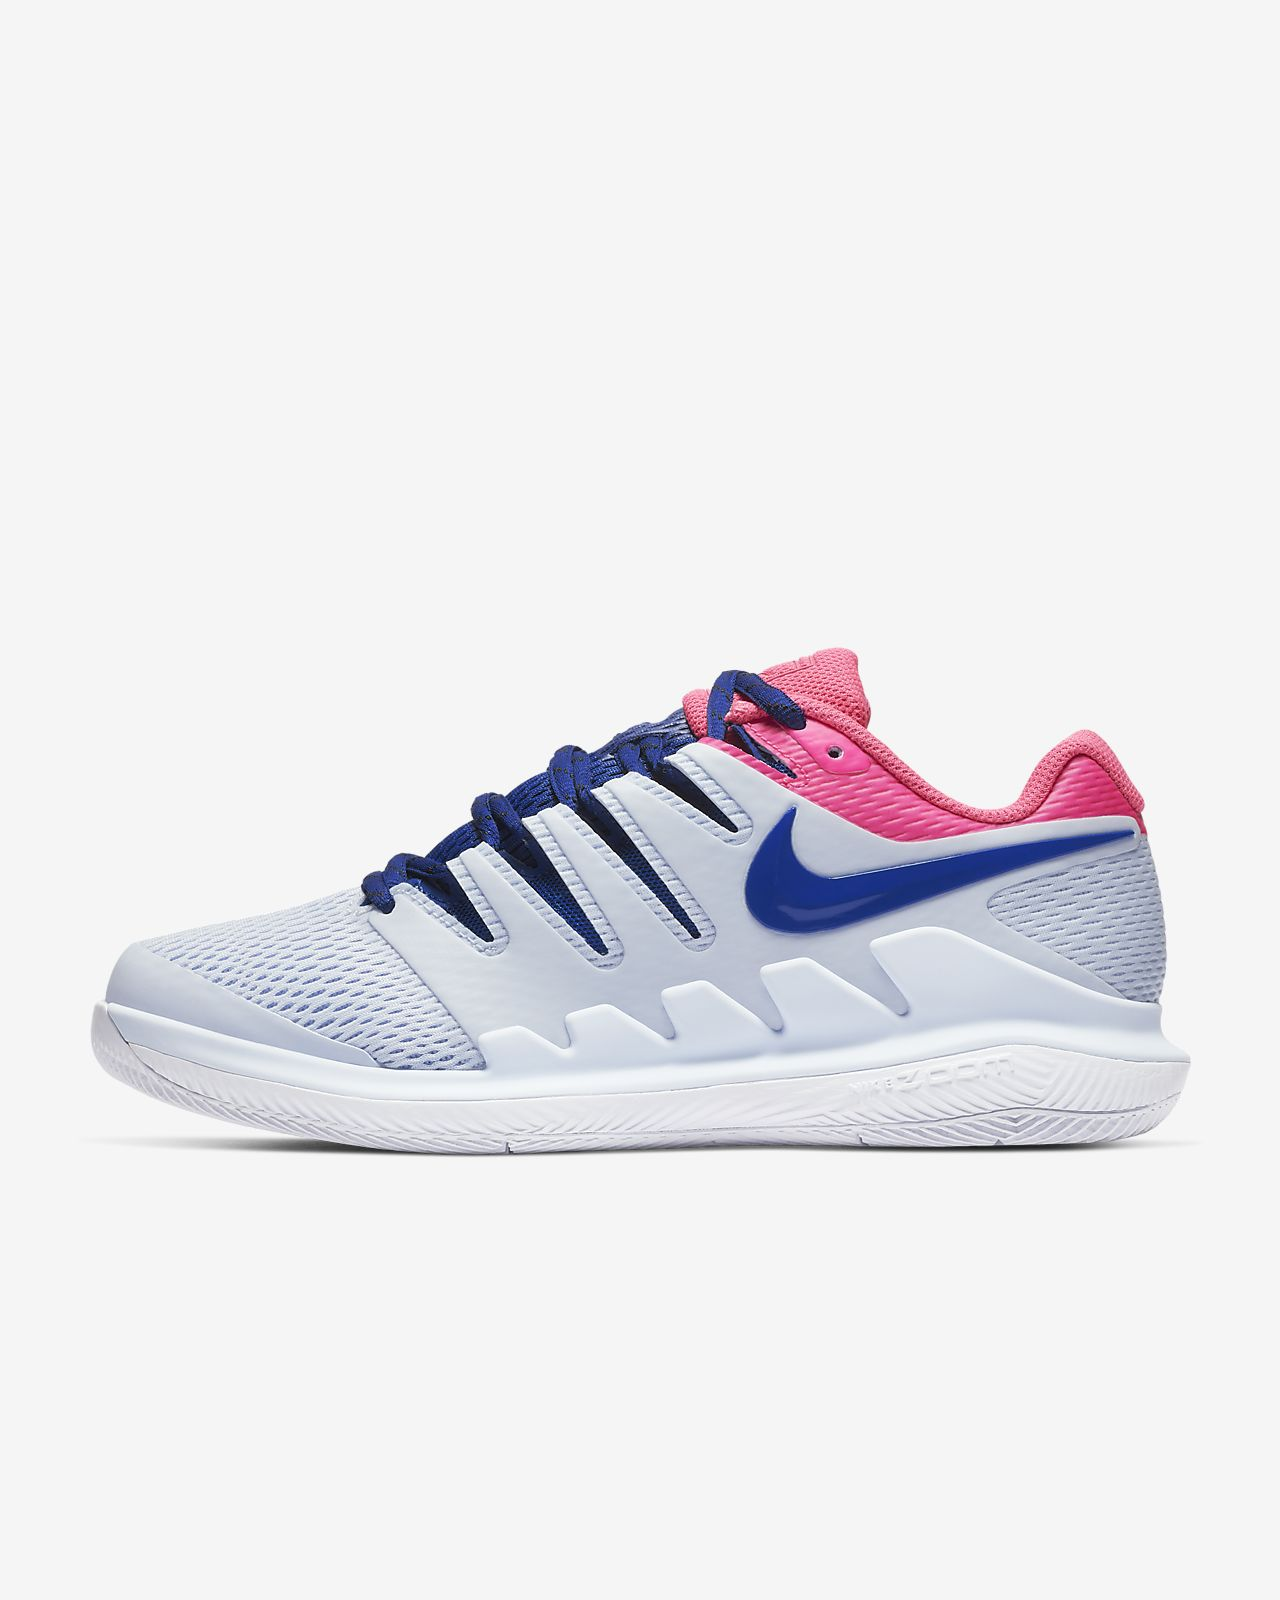 Nike Air Zoom Vapor X HC Hard Court 女子网球鞋